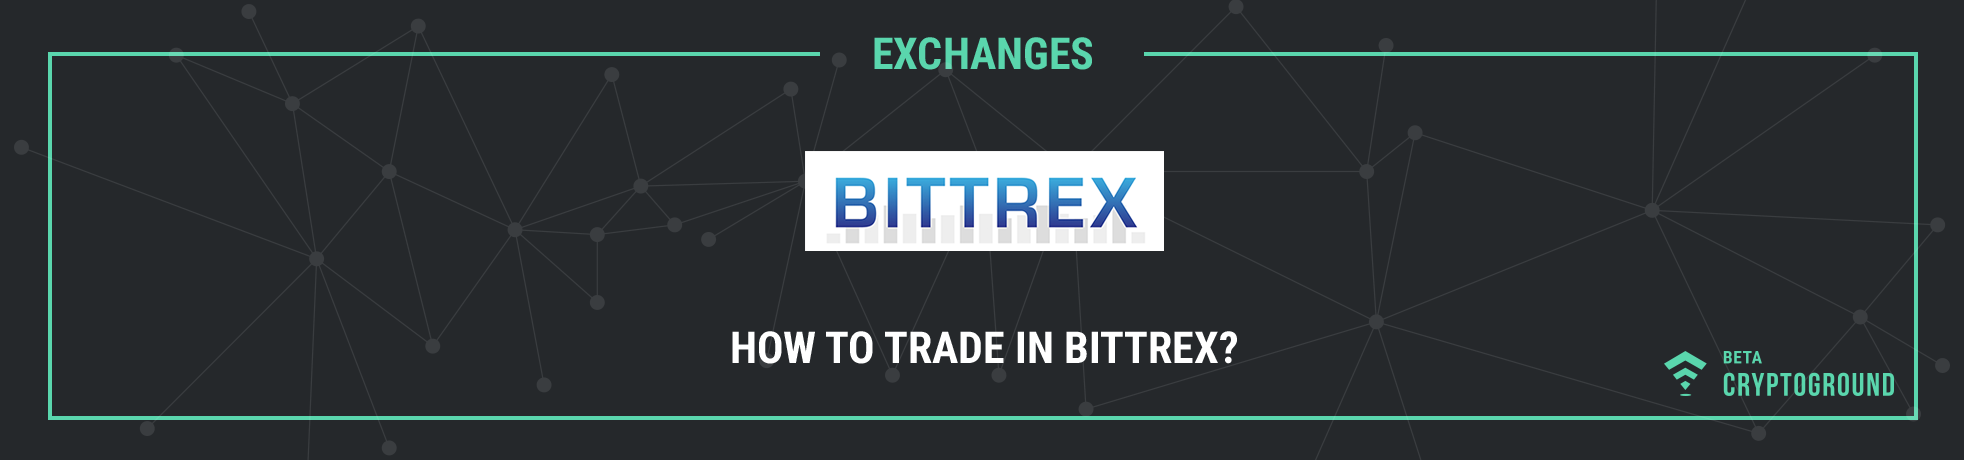 How to Trade in Bittrex? Complete Guide to Buy & Sell Cryptocurrency on Bittrex